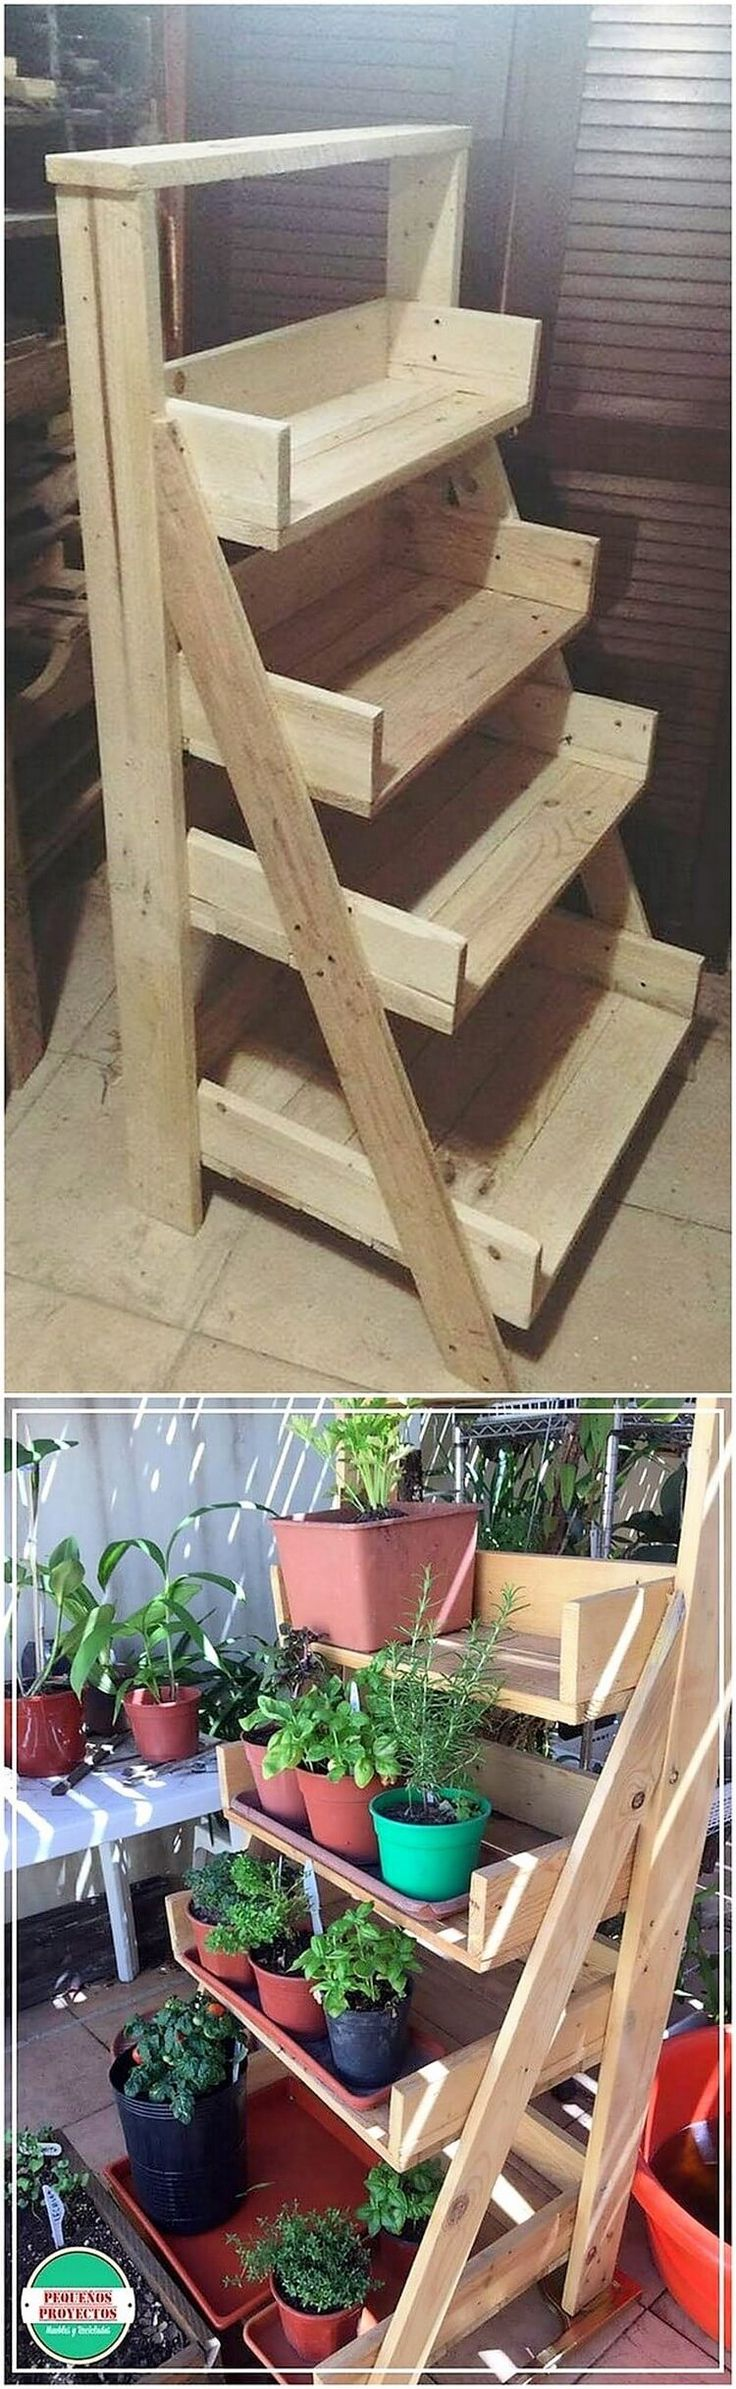 If you have been thinking around settling the planter pot stand in your house custody, then having a piece of wood pallet crafted pot stand is the ideal option for you. This creation has been majestic set with the vertical arrangement of the planter shelves that are looking so awesome.